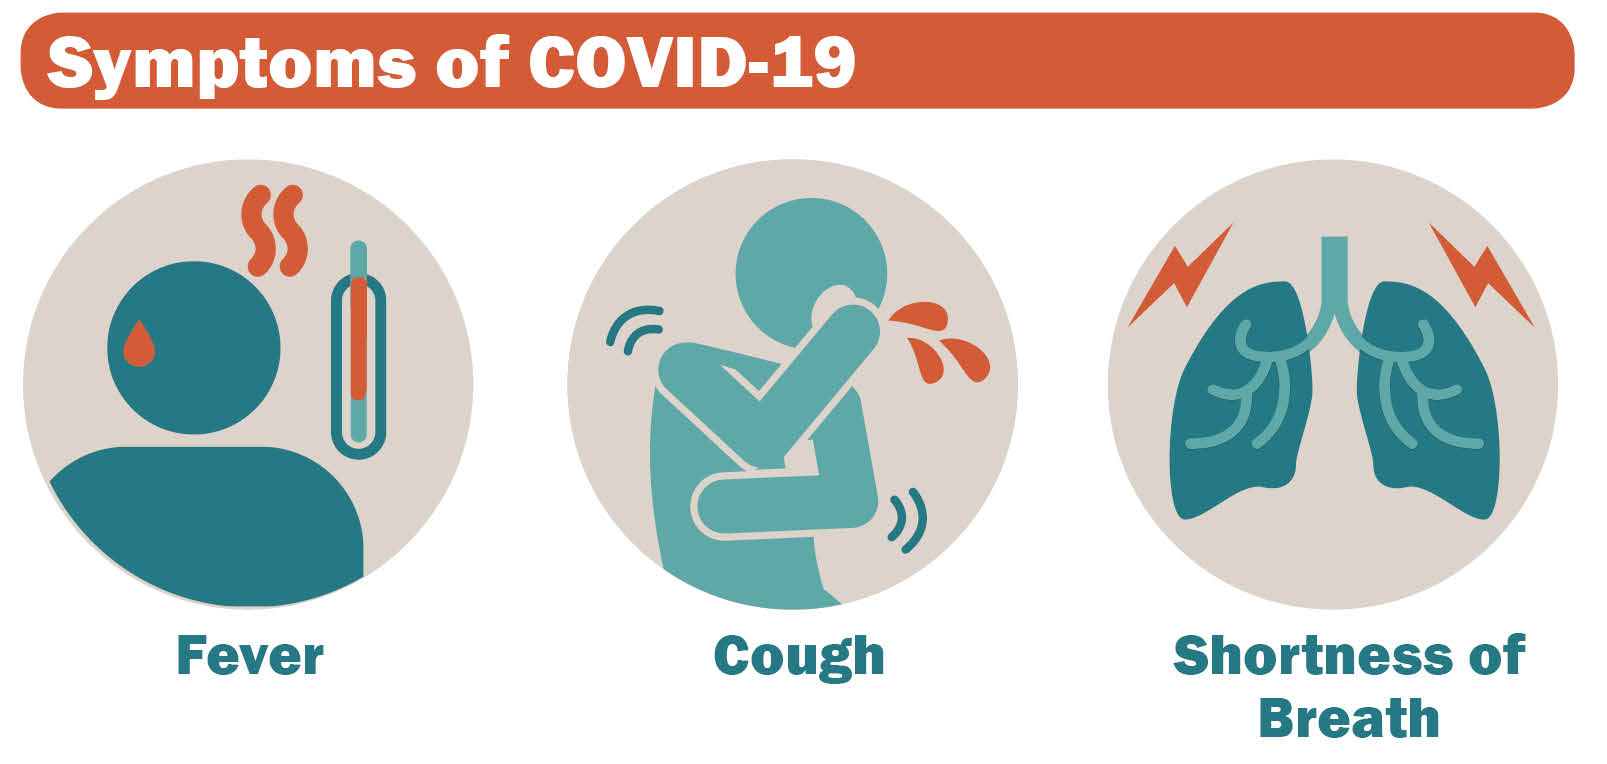 Symptoms: Fever, Cough, Shortness of Breath